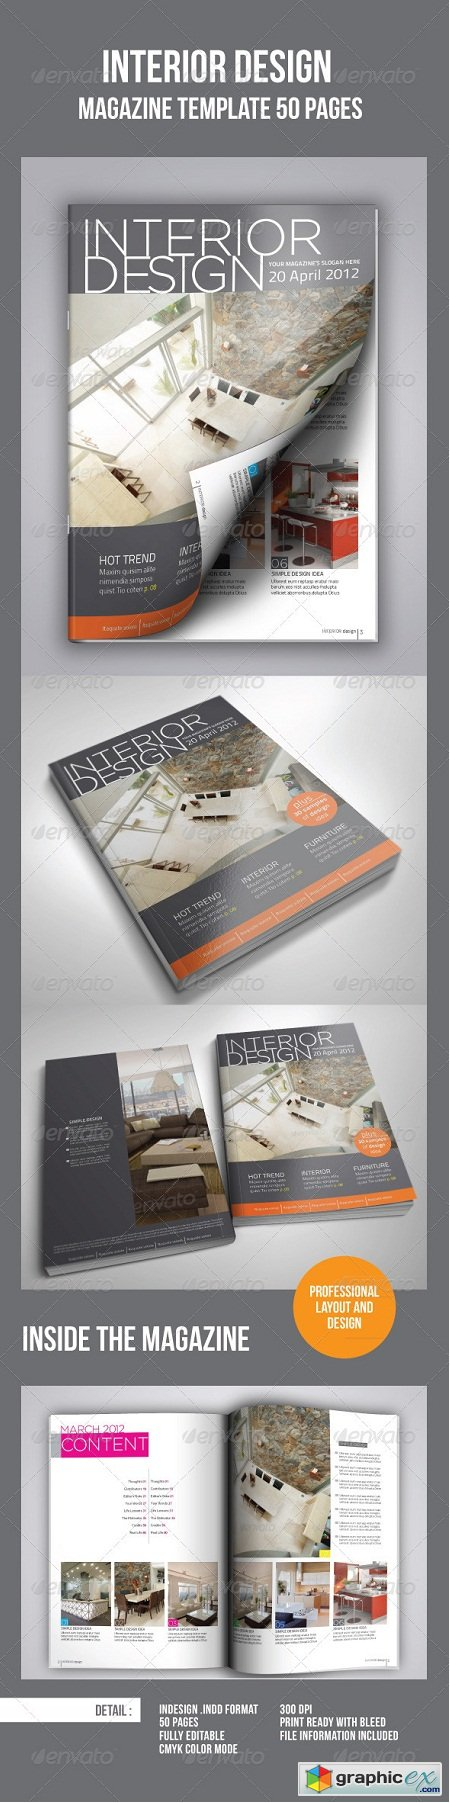 Interior Design Magazine Template (50 pages)